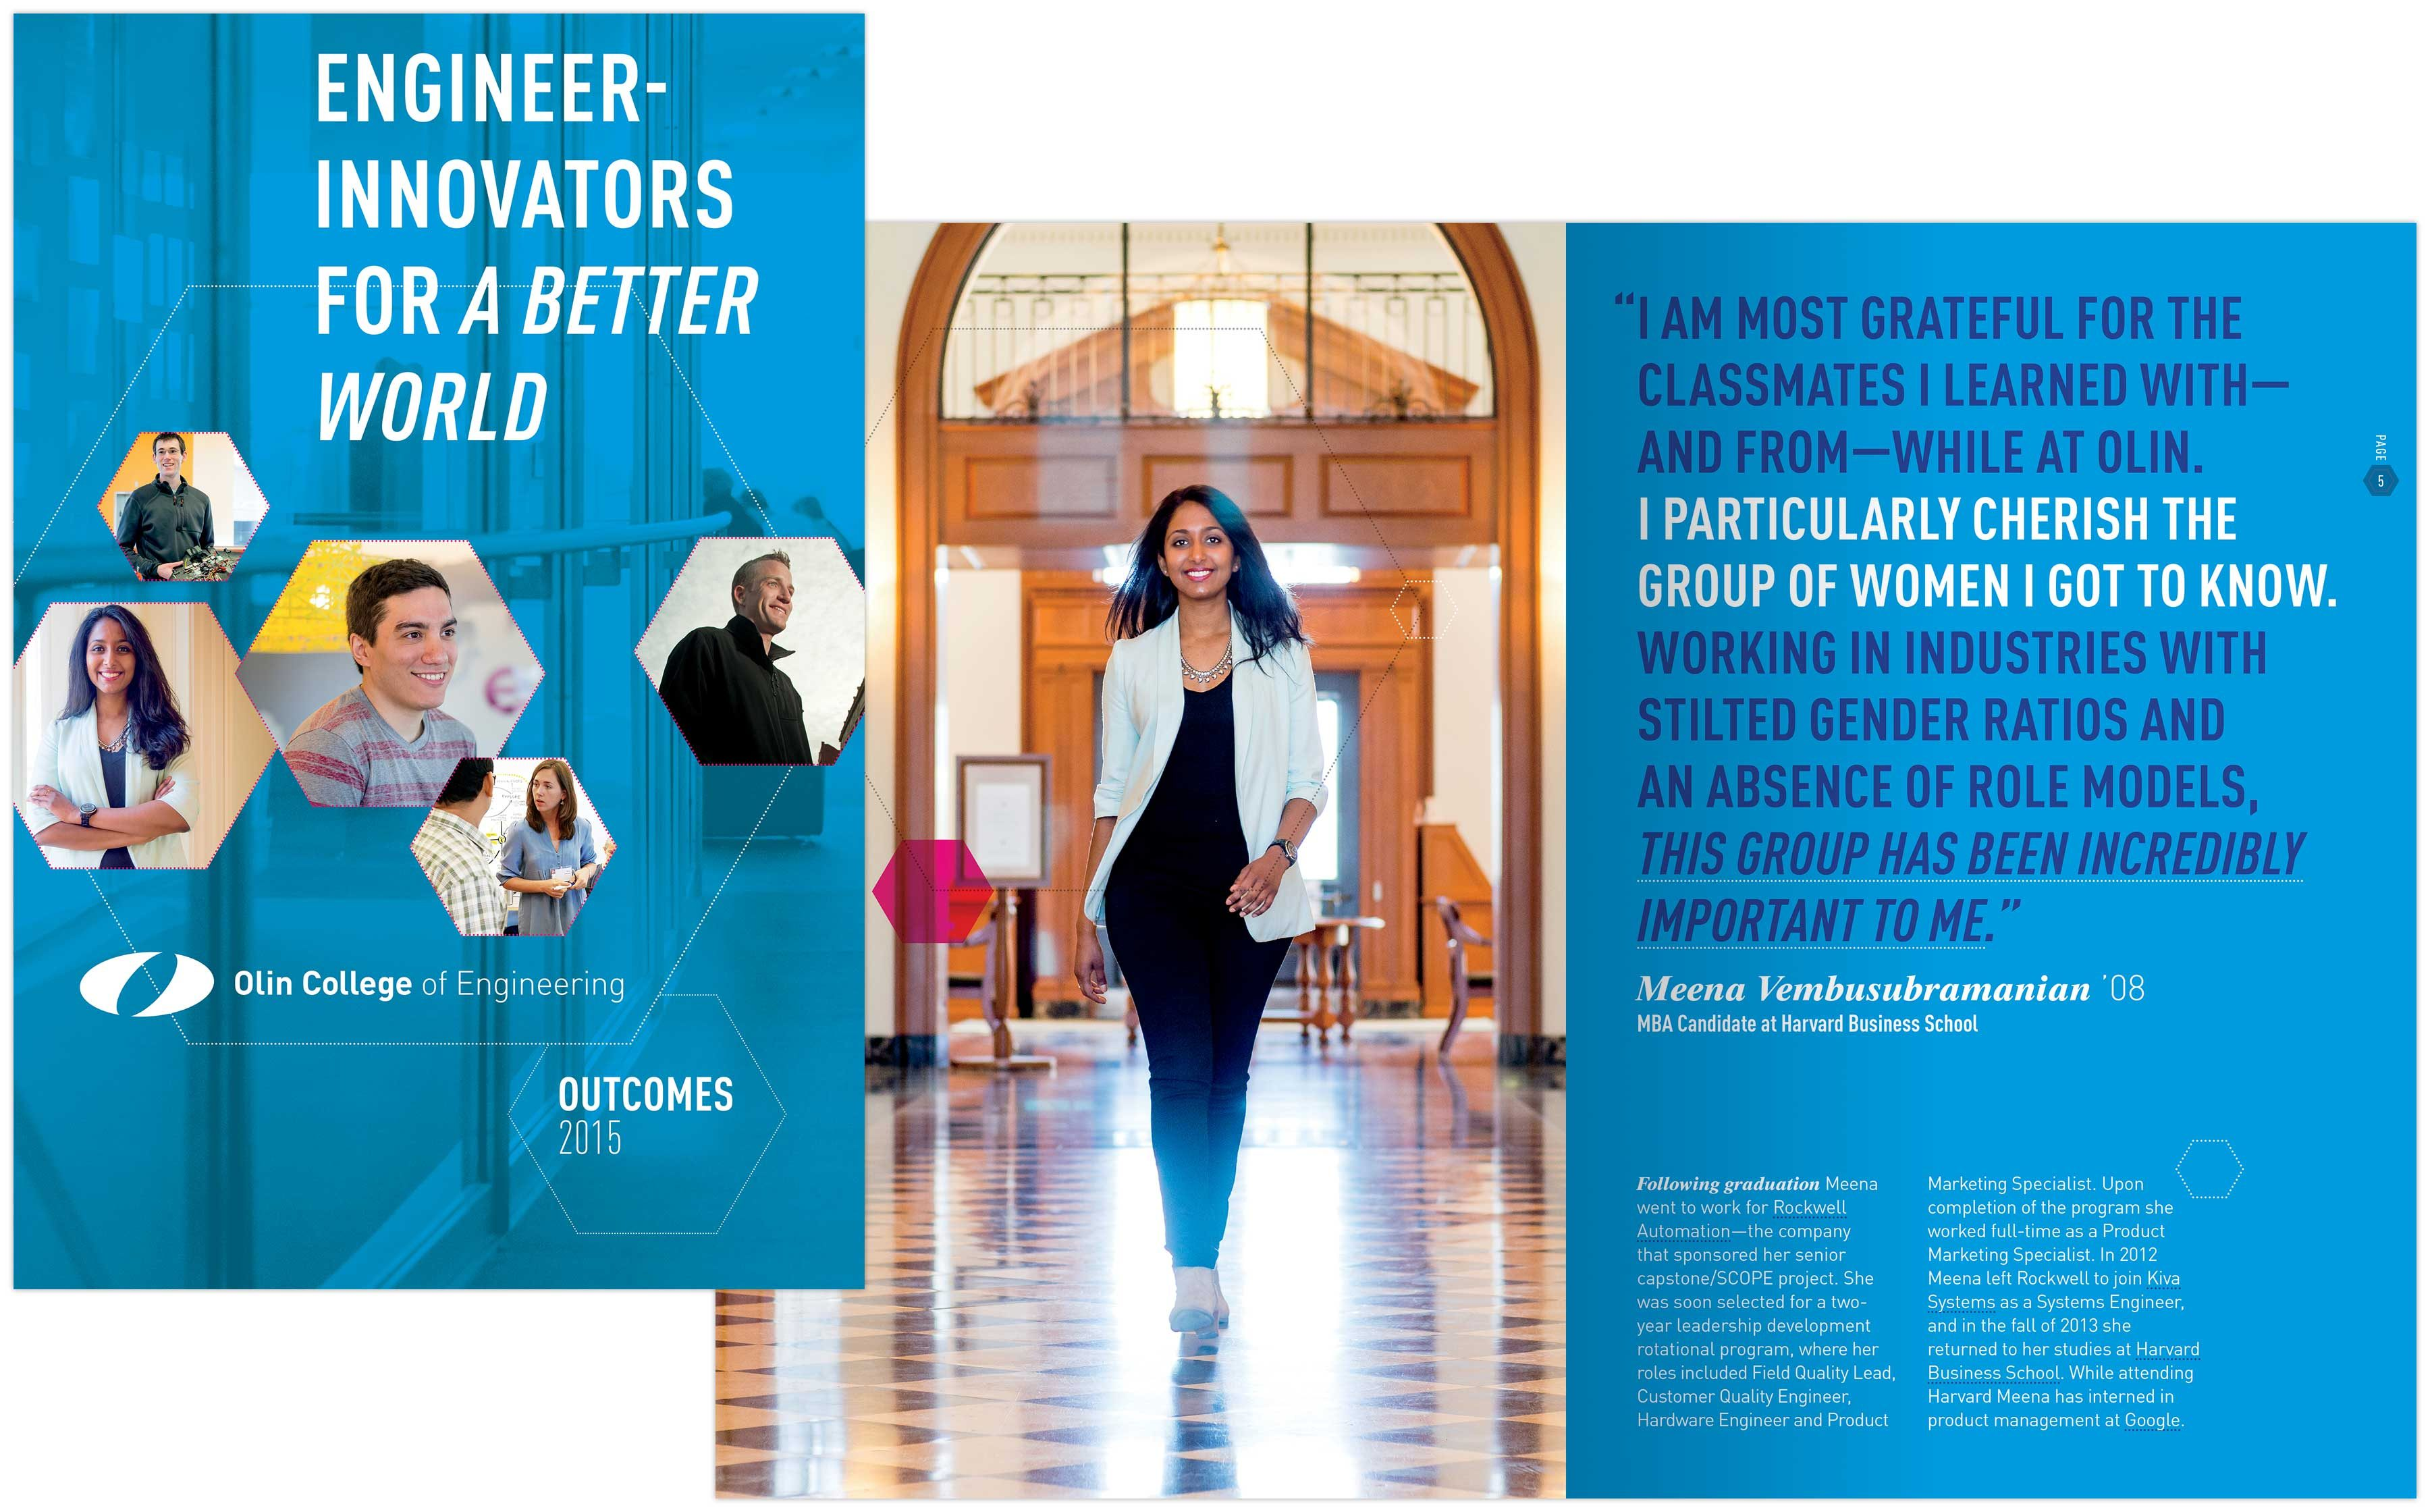 Outcomes 2015 cover: Engineer-innovators for a better world